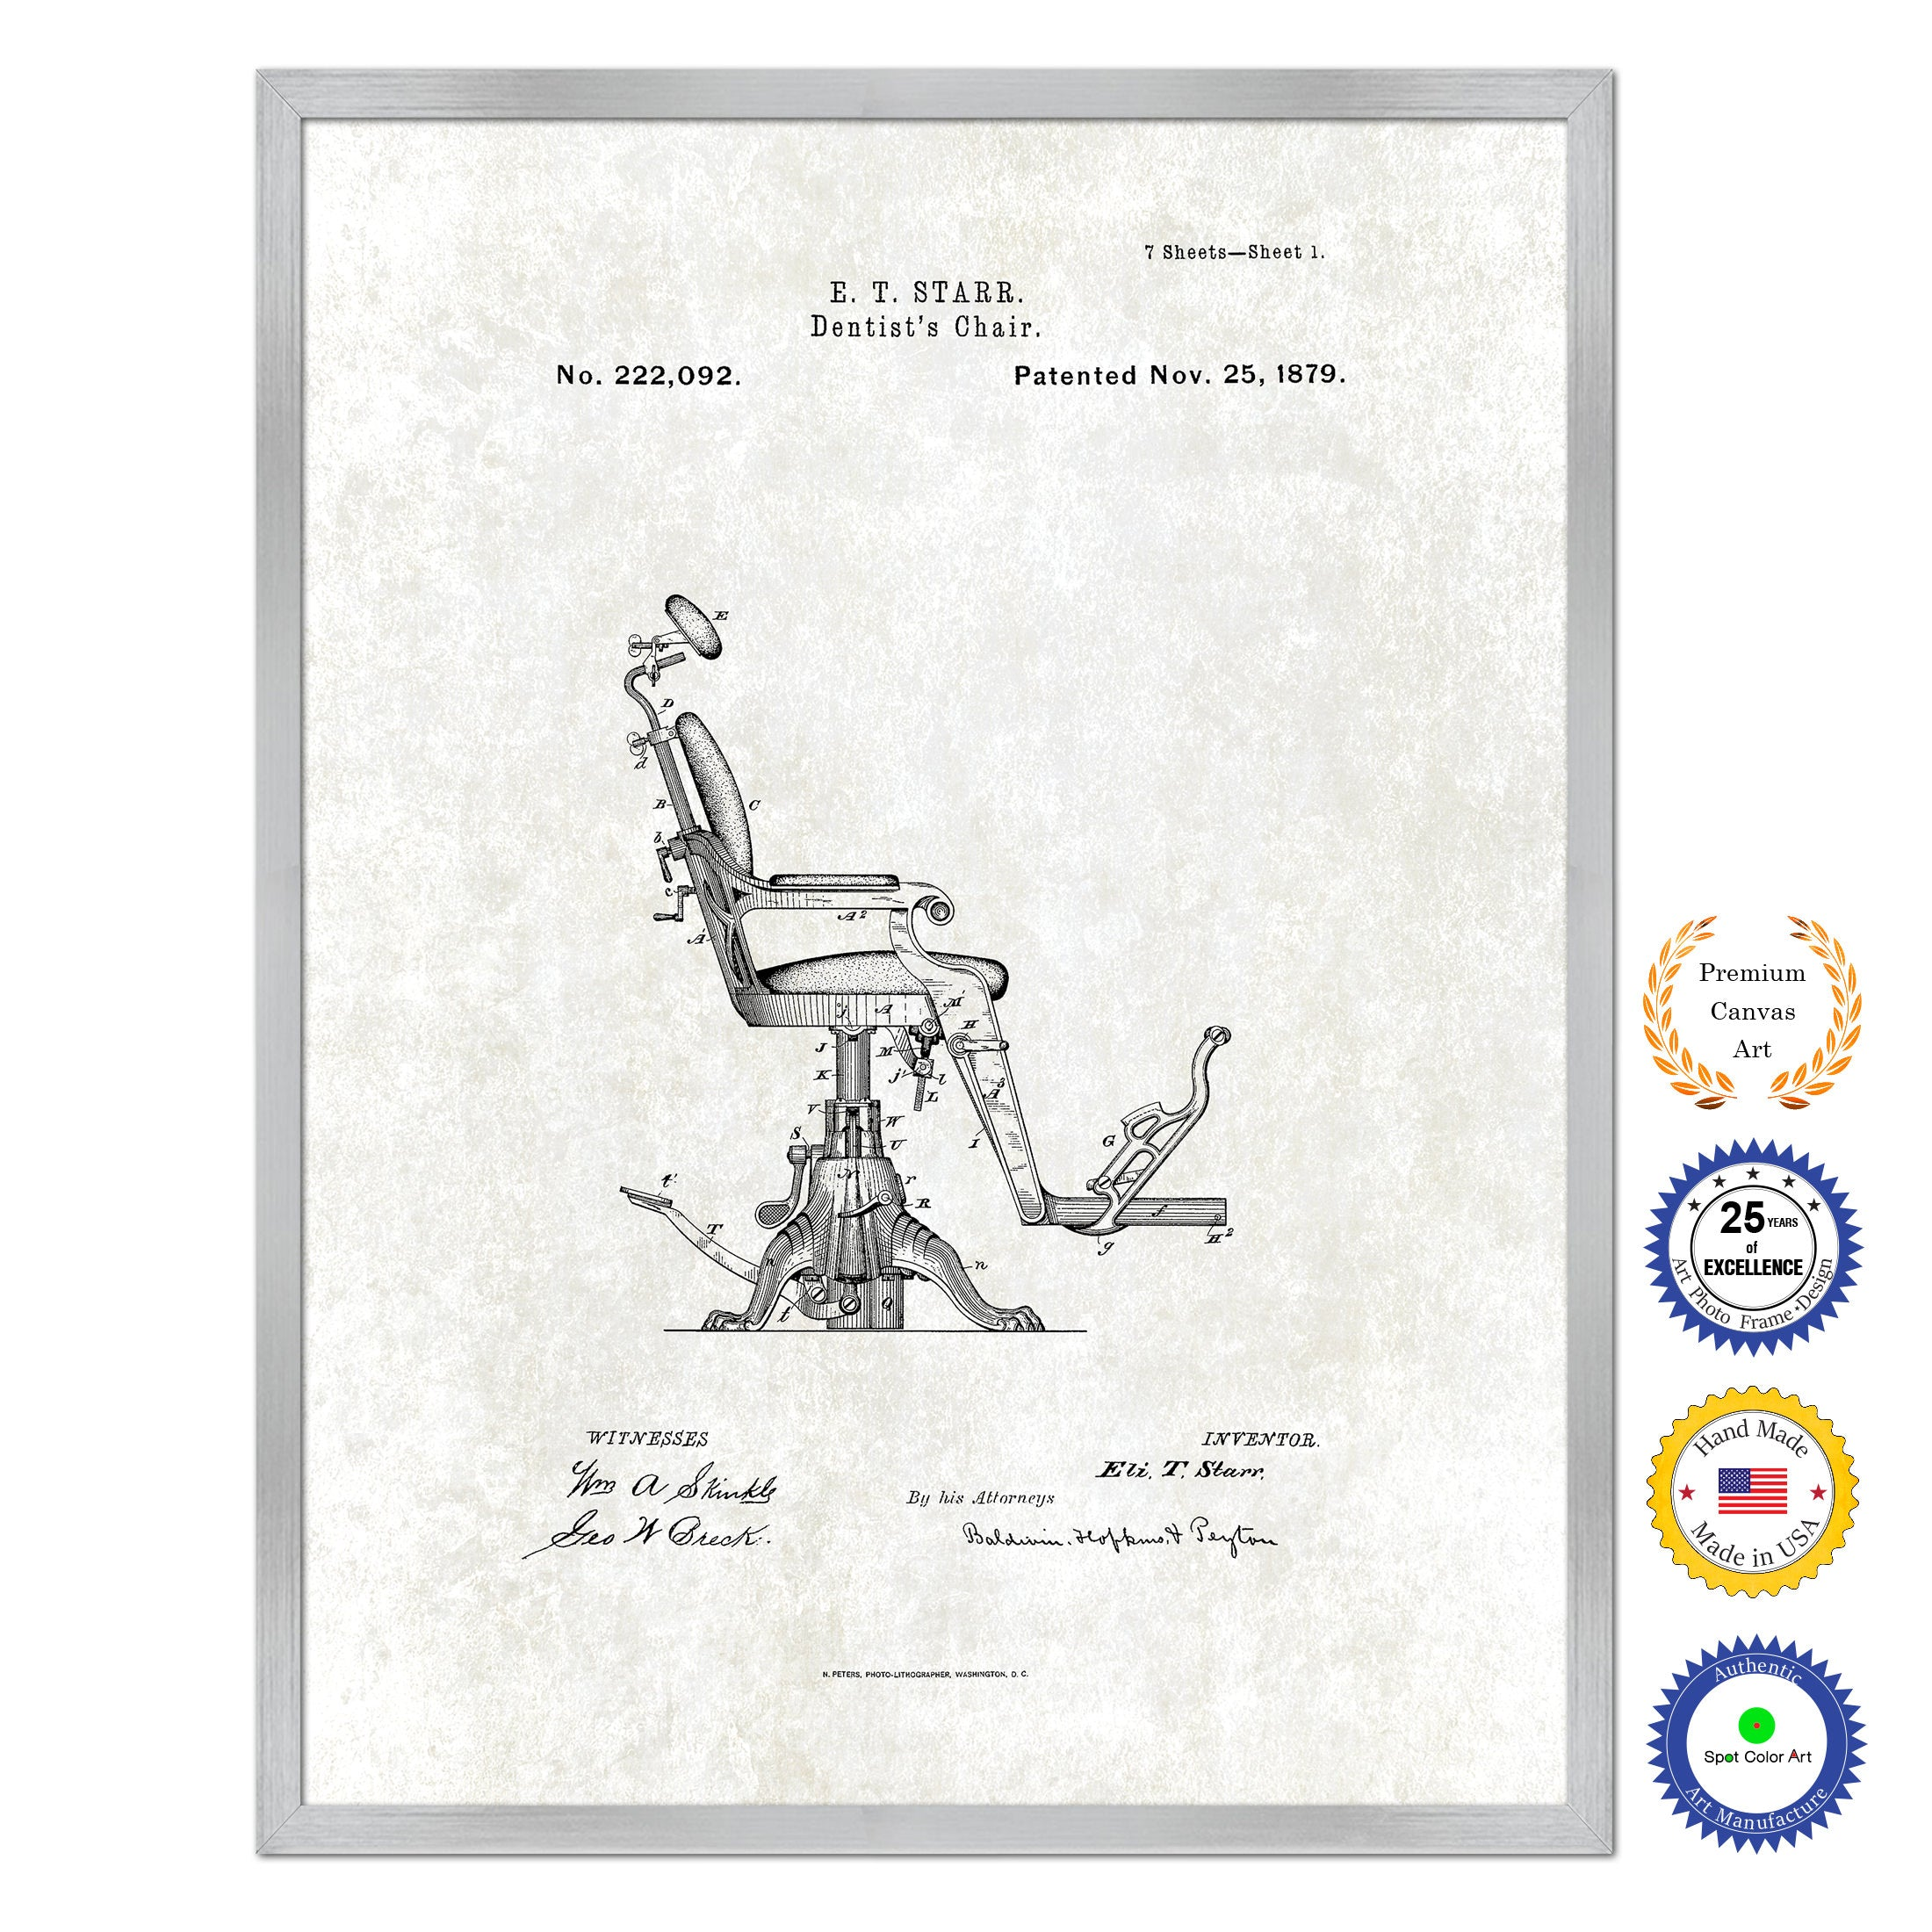 1879 Dentist's Chair Antique Patent Artwork Silver Framed Canvas Print Home Office Decor Great for Dentist Orthodontist